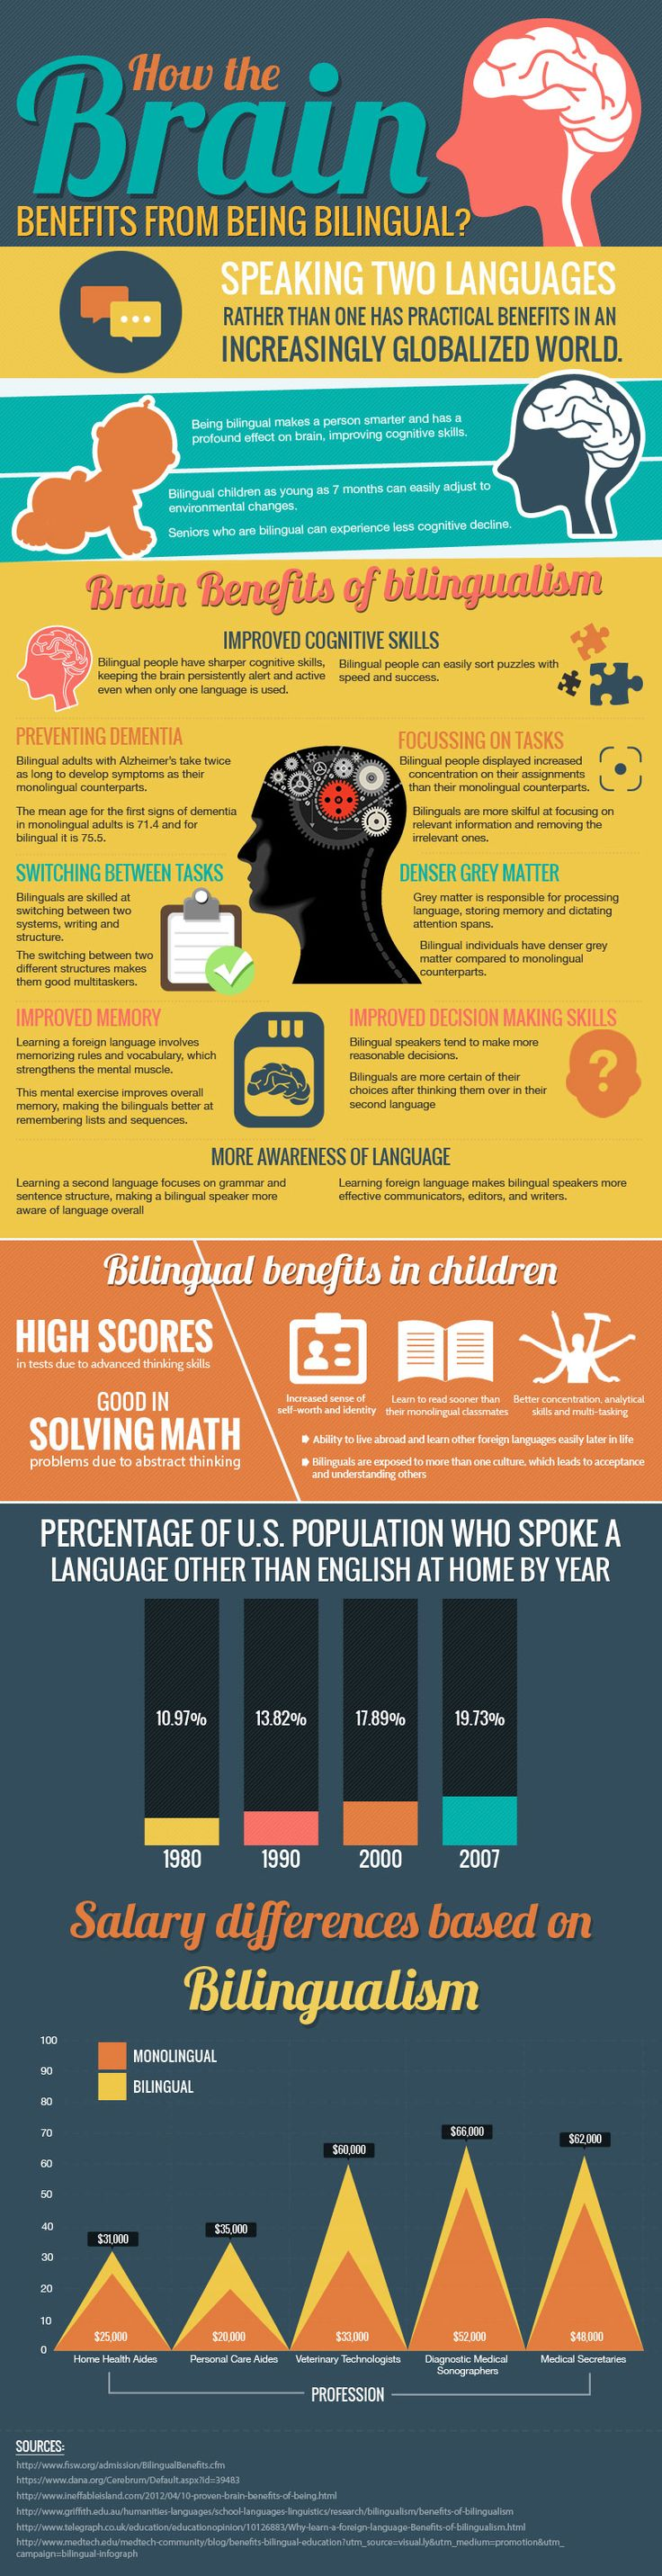 How the Brain Benefits from Being Bilingual – Infographic